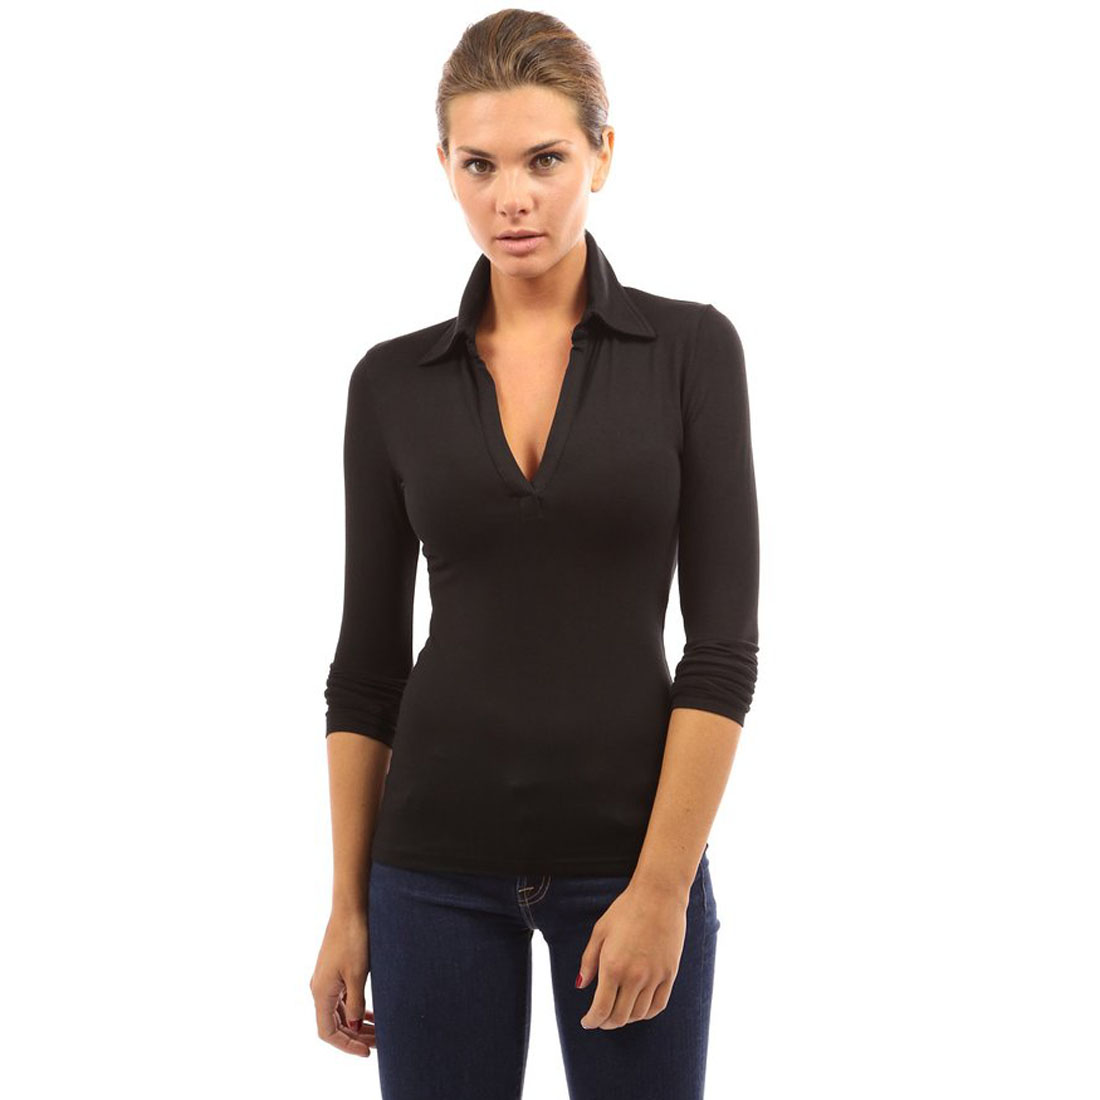 Womens Collar Blouses Deep V-neck High Stretch Long Sleeve Shirt T ...